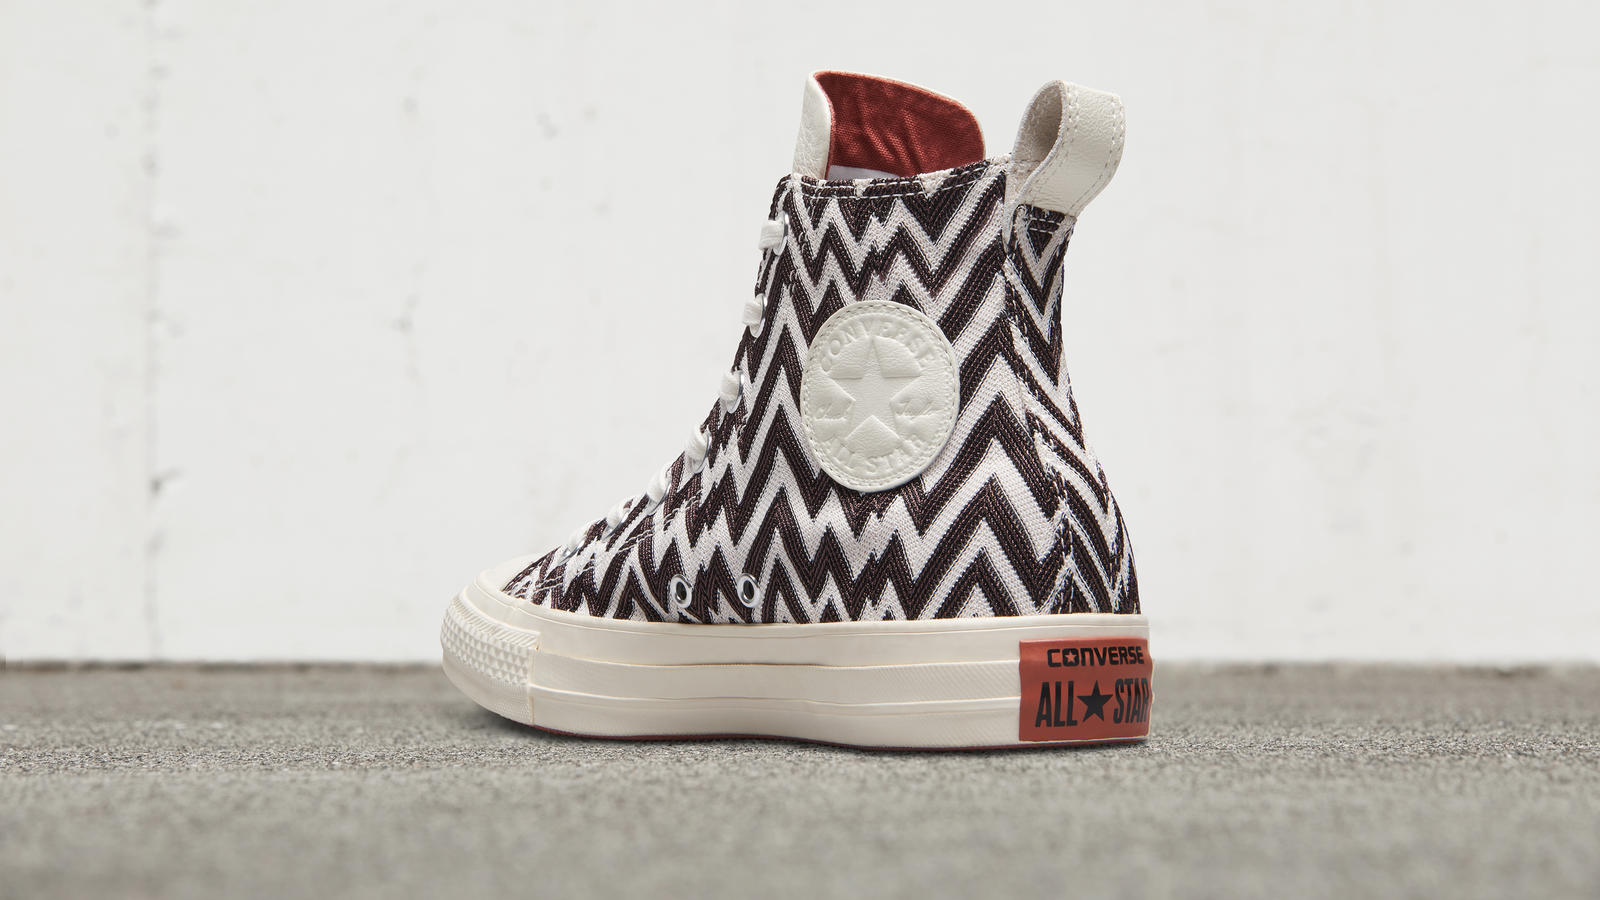 160823 converse missoni 154440 details 003 stacked hd 1600